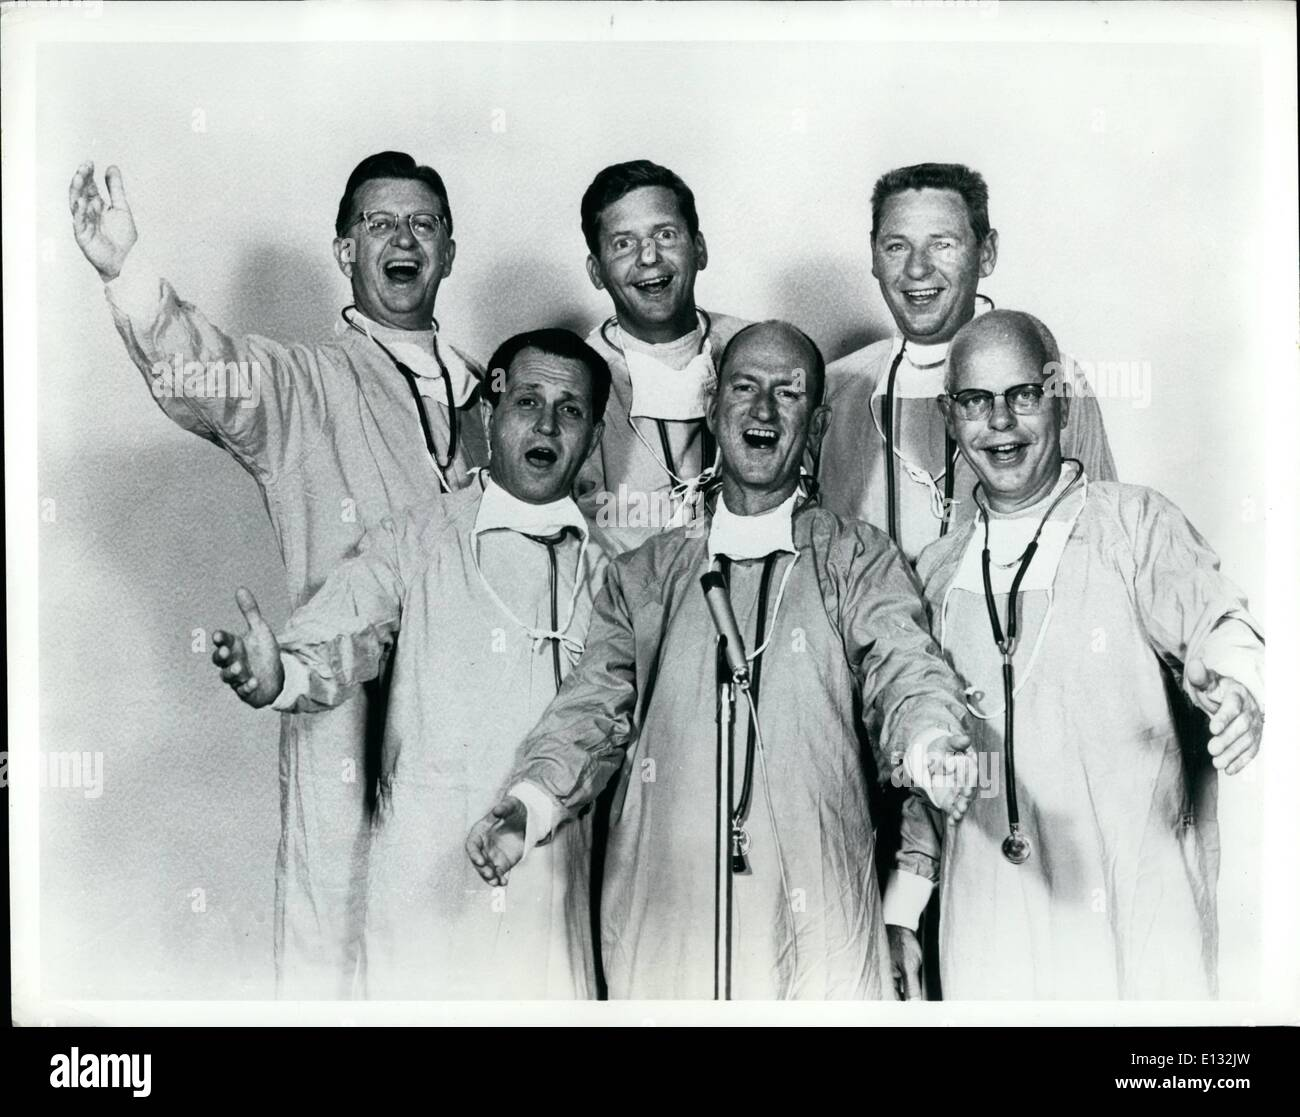 Feb. 26, 2012 - Six Springfield, Mo., physicians have made medical history - for better or for worse - in becoming Stock Photo